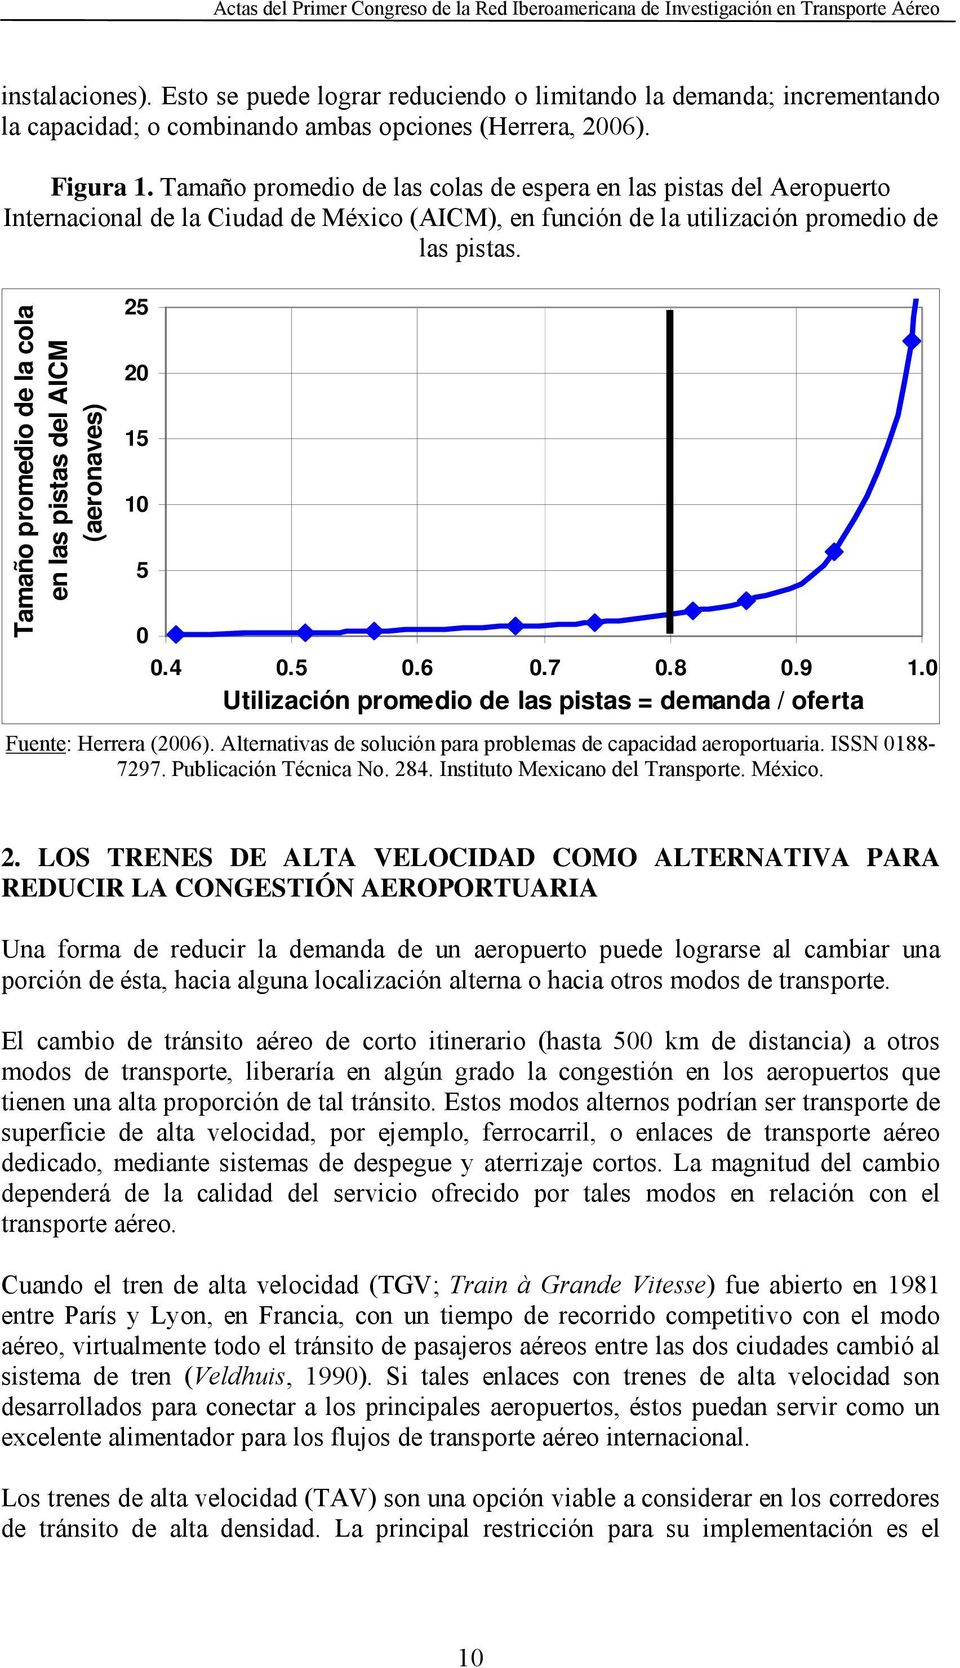 Tamaño promedio de la cola en las pistas del AICM (aeronaves) 25 20 15 10 5 0 Source: Own 0.4elaboration 0.5on base of 0.6 Herrera (2004), 0.7 Table 6.1. 0.8 0.9 1.